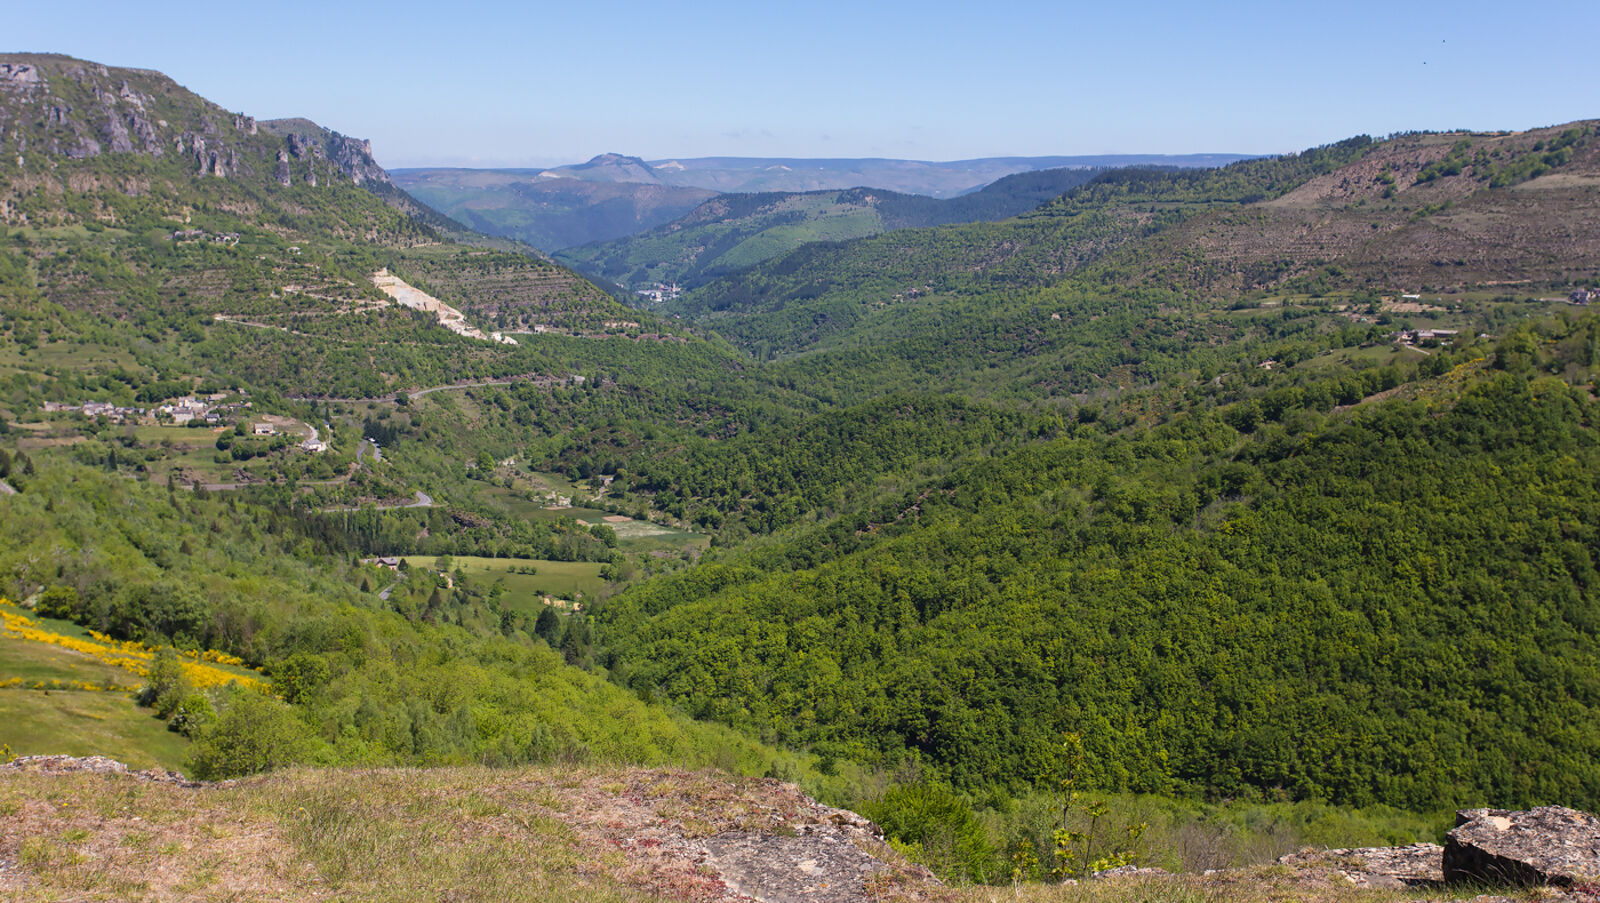 The Cevennes, a region of upland limestone country side.